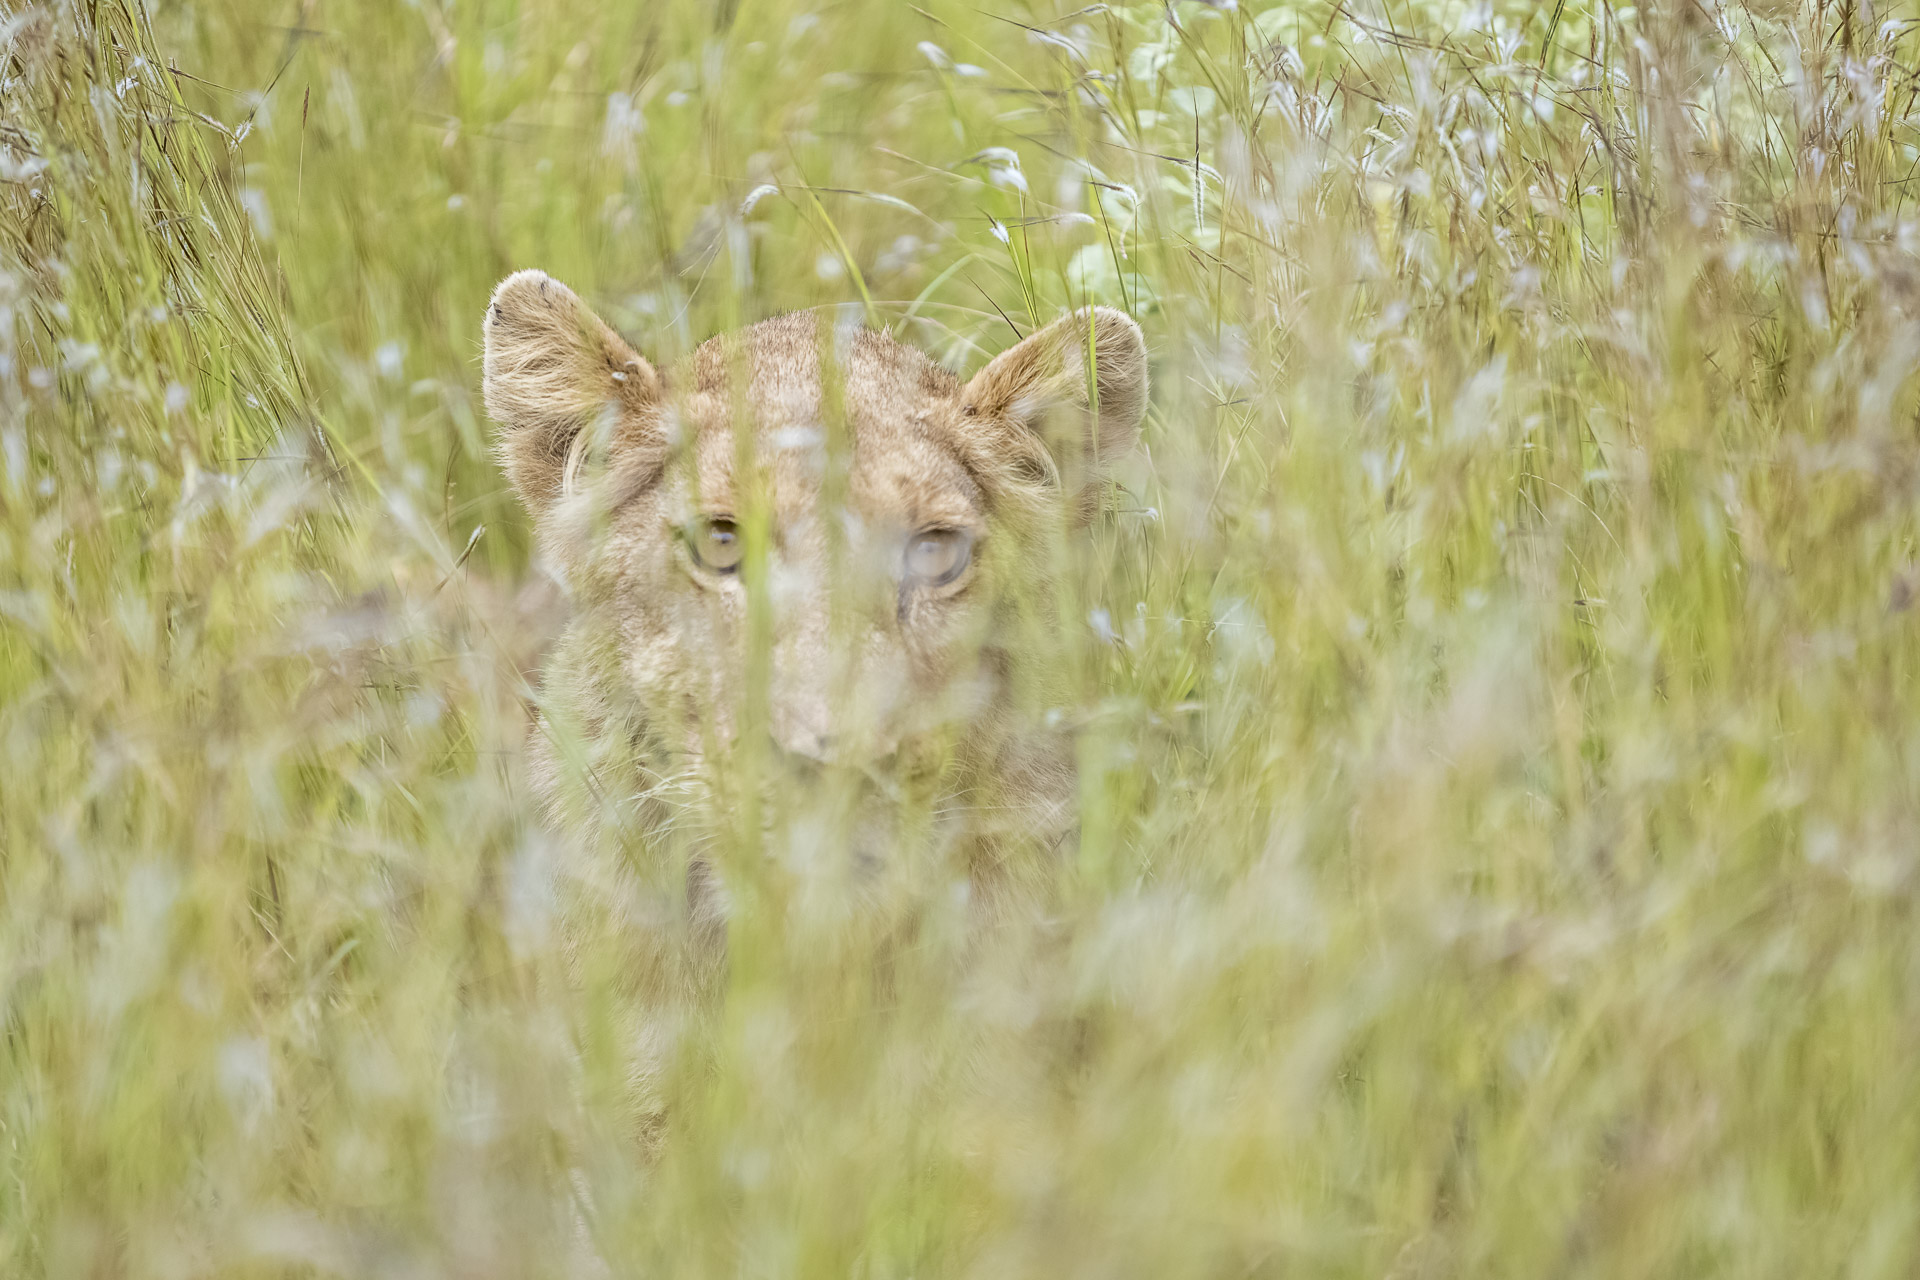 Private Day Safari in Kruger National Park image of a lion in long grass